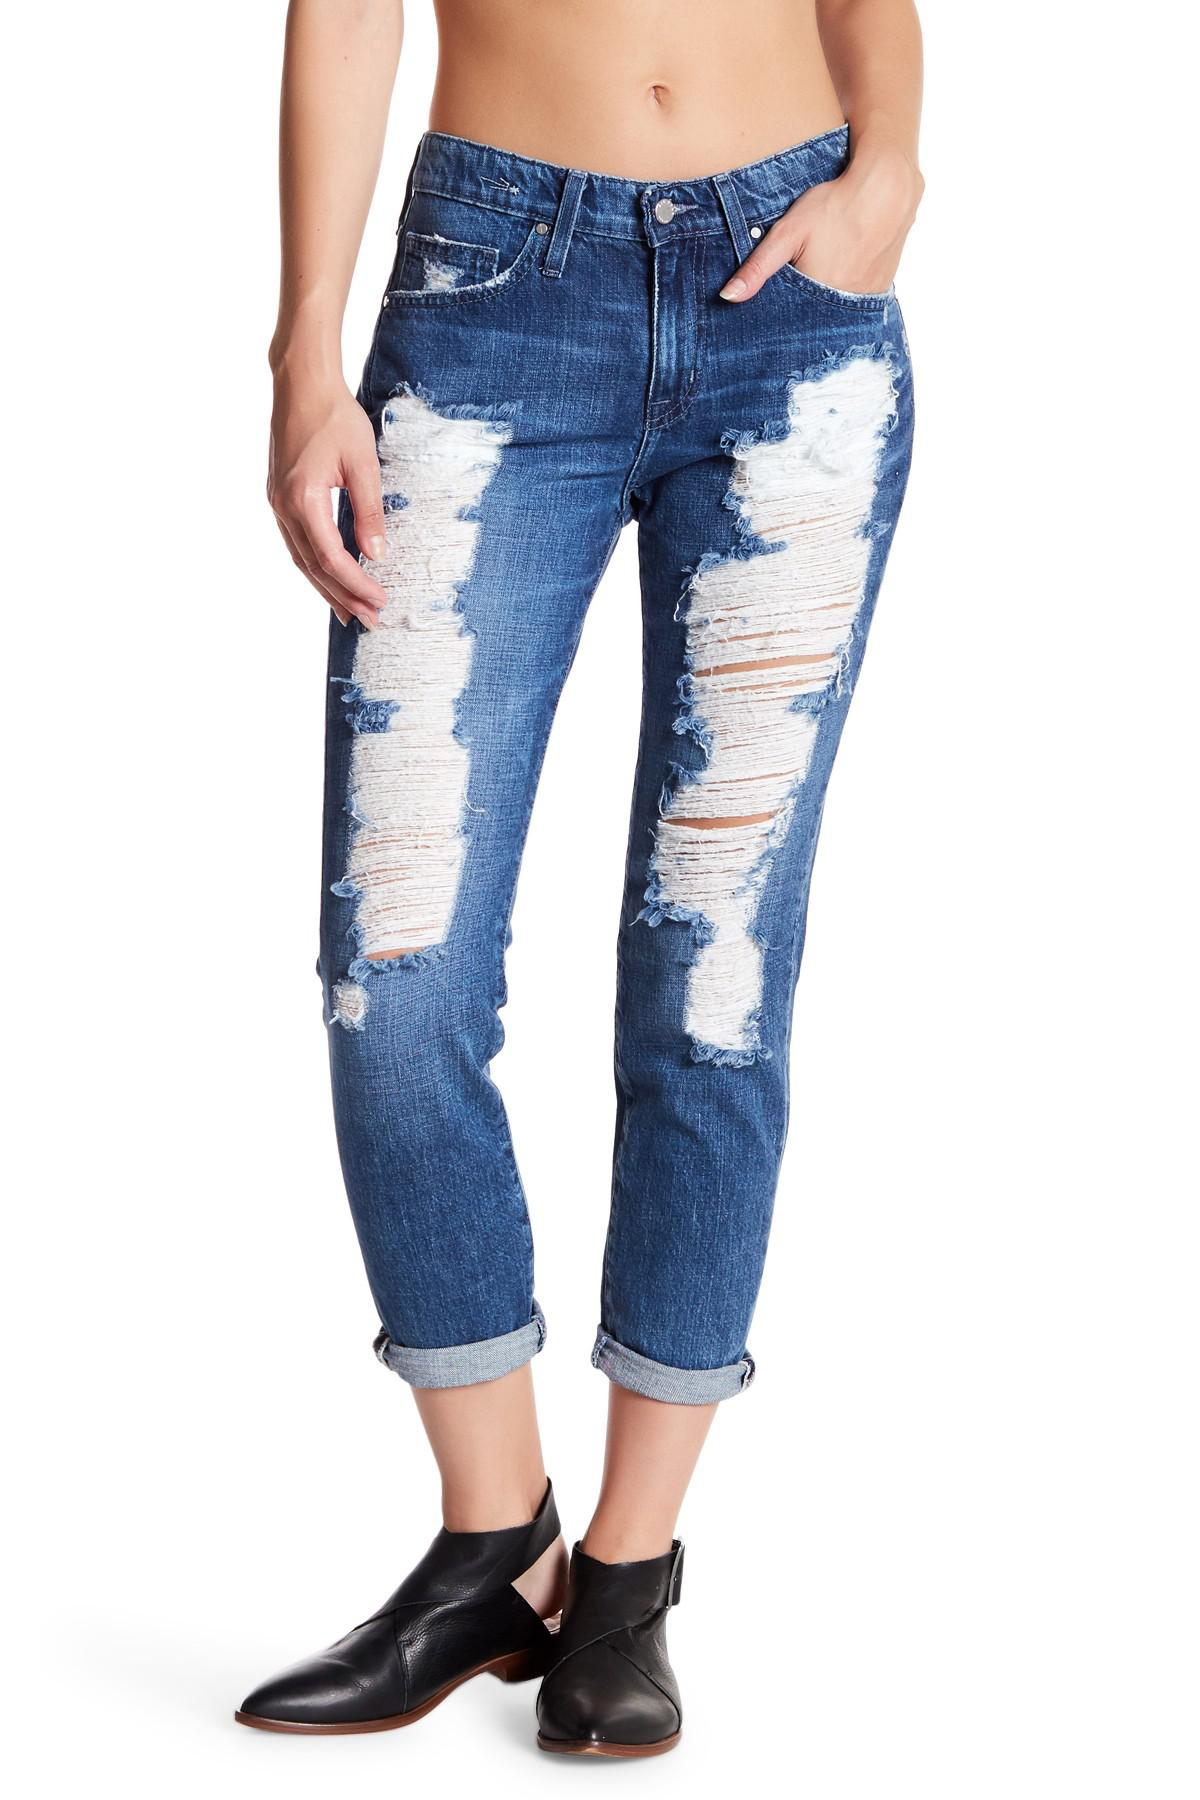 Women's Big Star Vintage Jeans Big Star Vintage women's jeans offers the same premium quality you expect from Big Star, but with a worn, lived in look. Through a wide series of wash processes, Big Star Vintage jeans for women are able to replicate a truly vintage look.